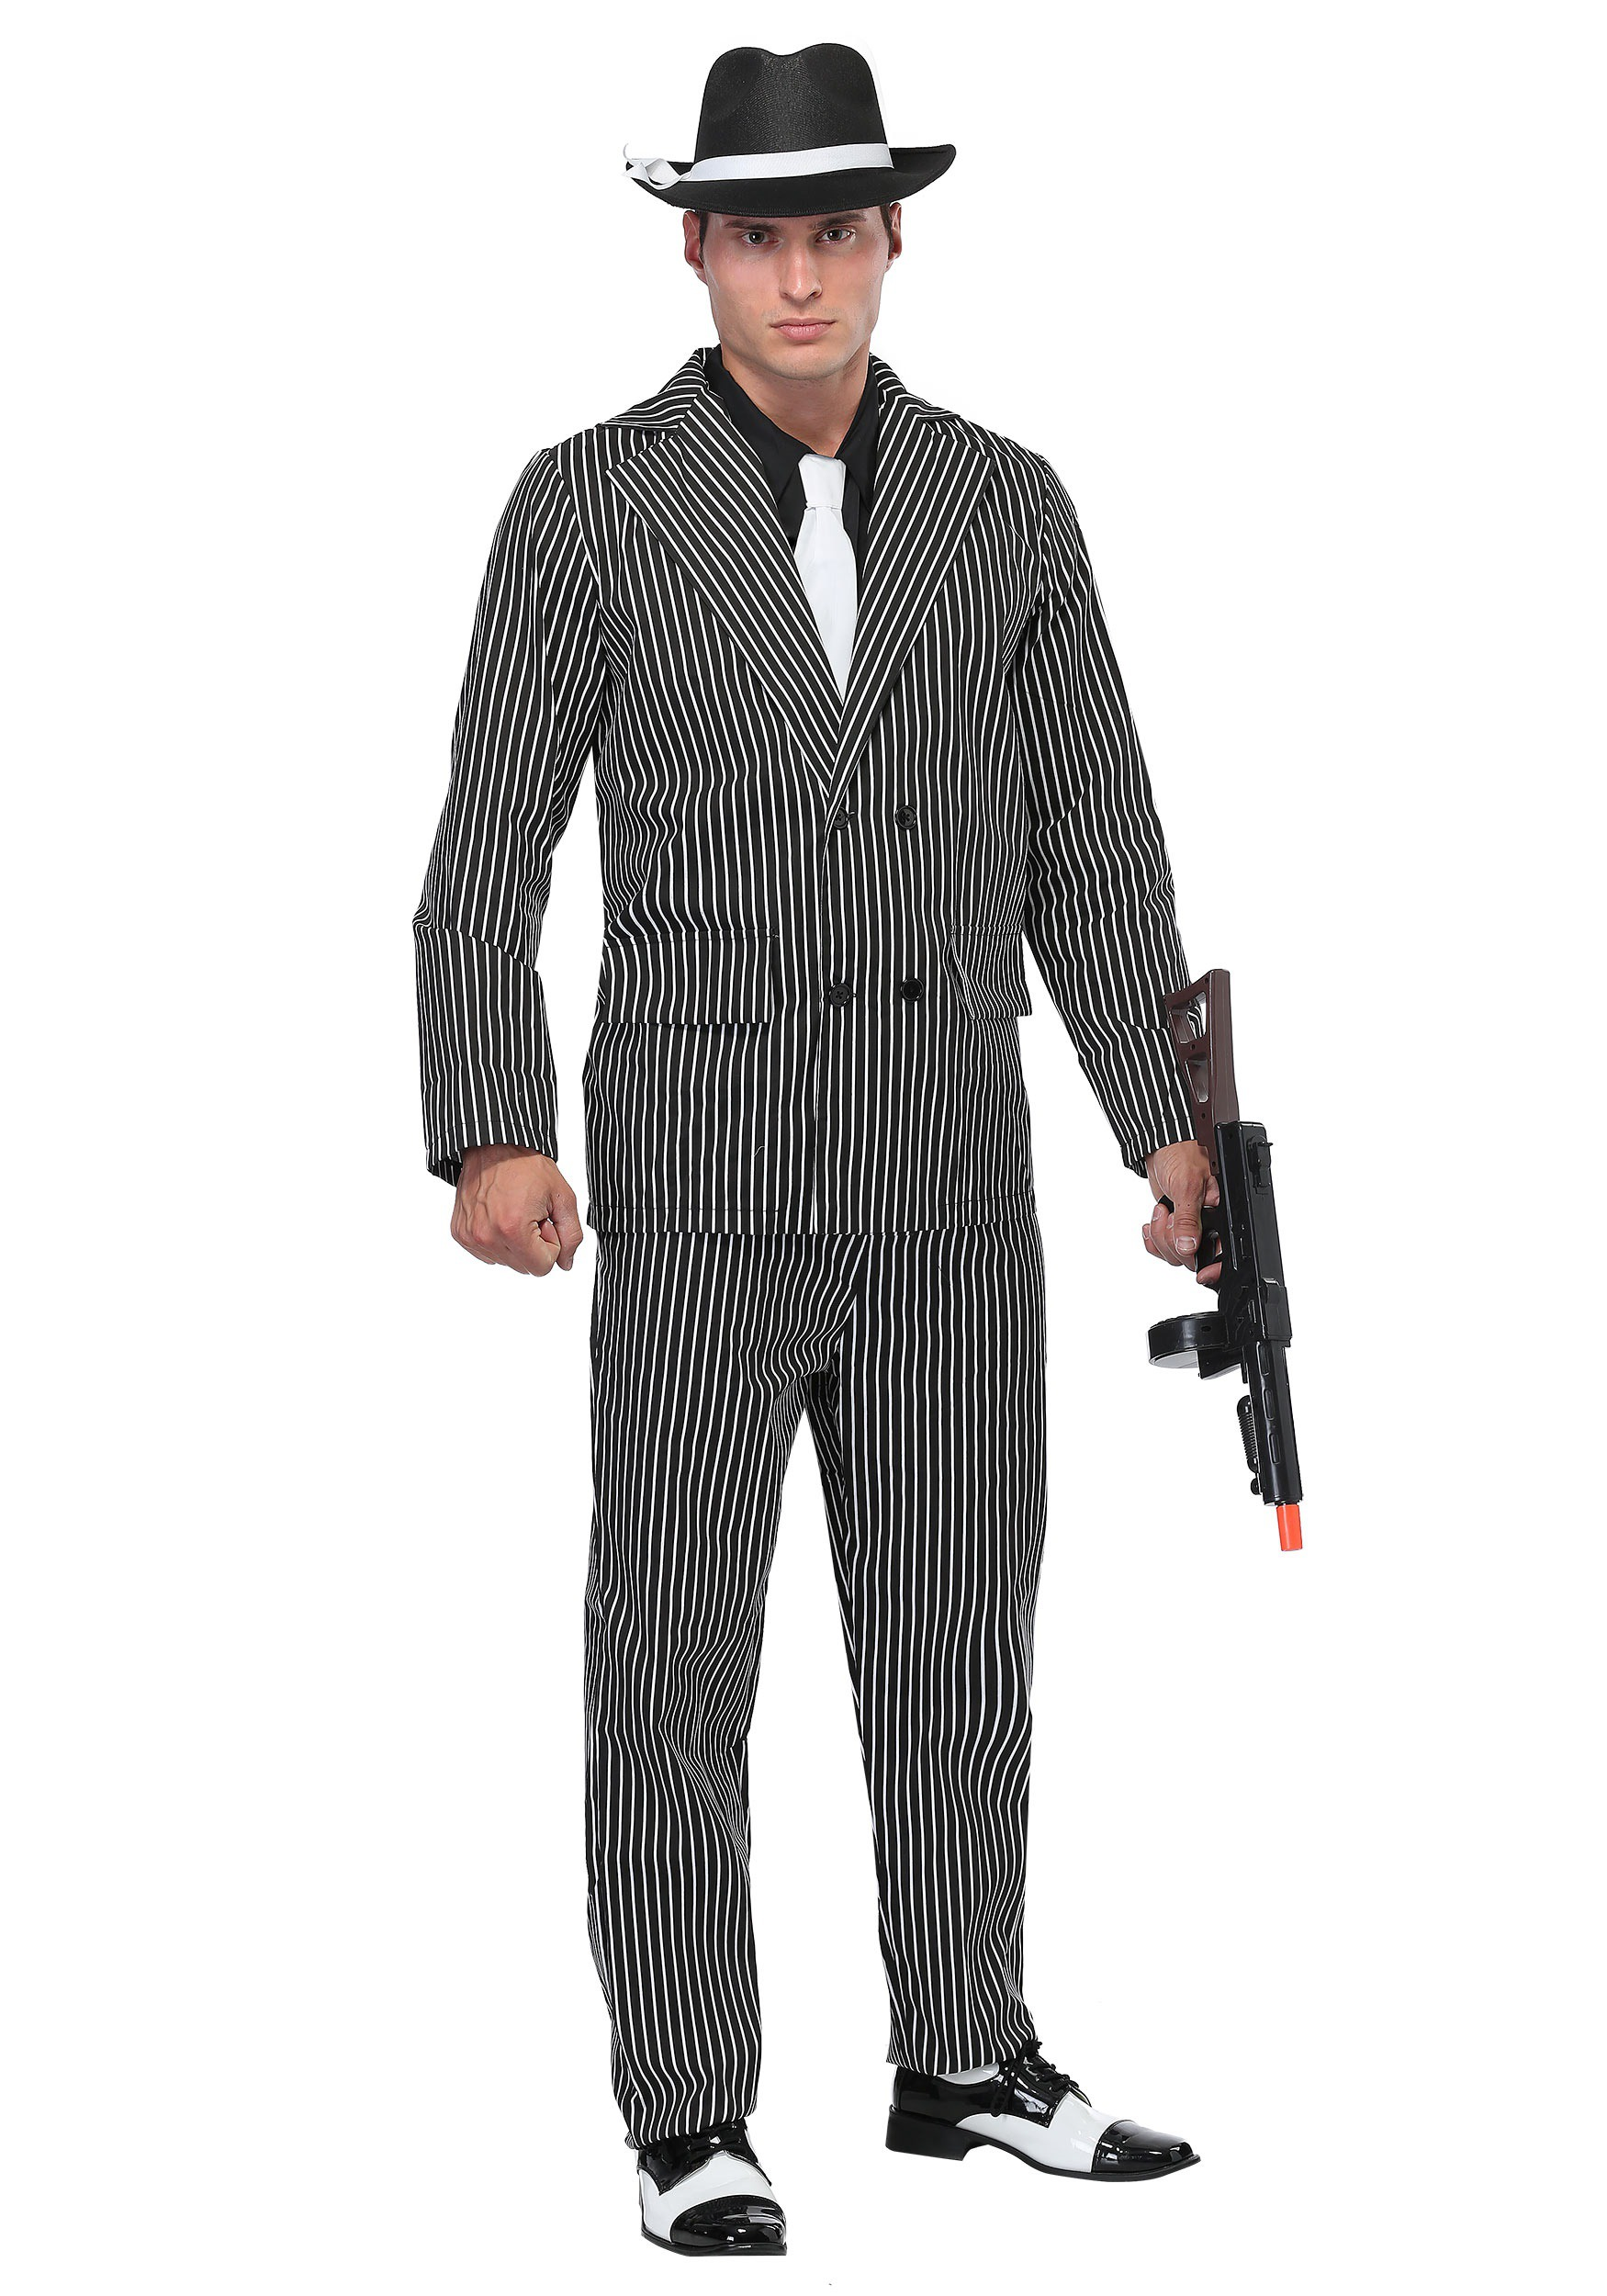 Connu Gangster Costumes - Adult, Kids 1920's Halloween Gangster Costume SL91